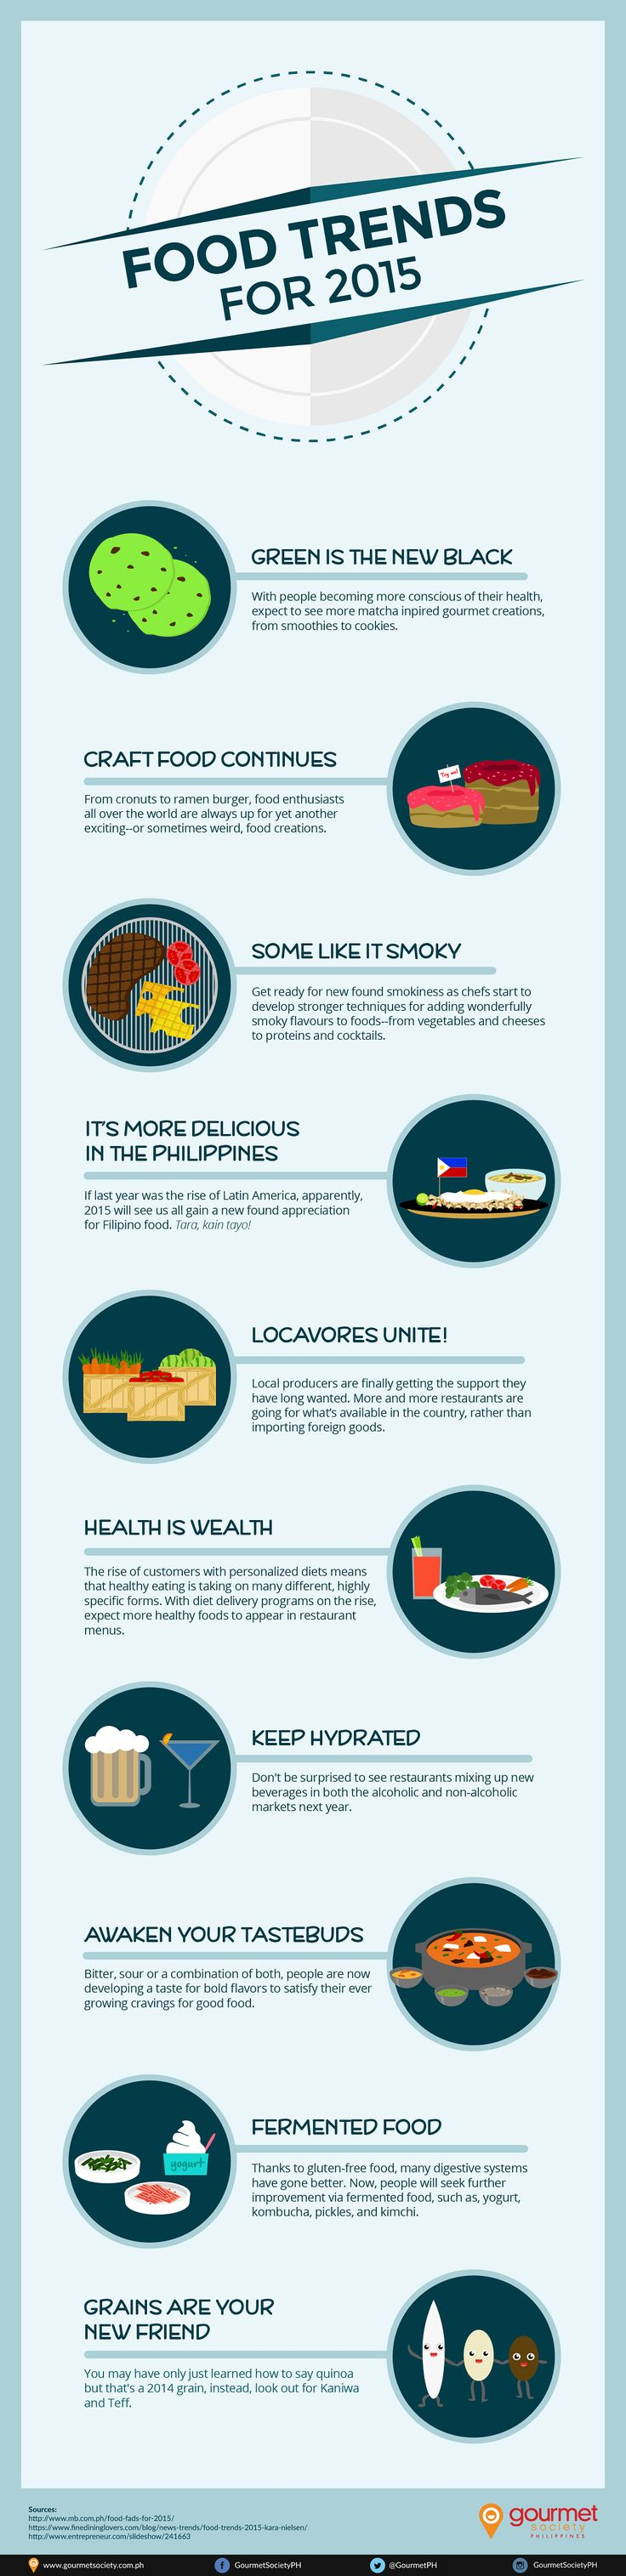 Food Trends for 2015 #infographic #Food #Trends